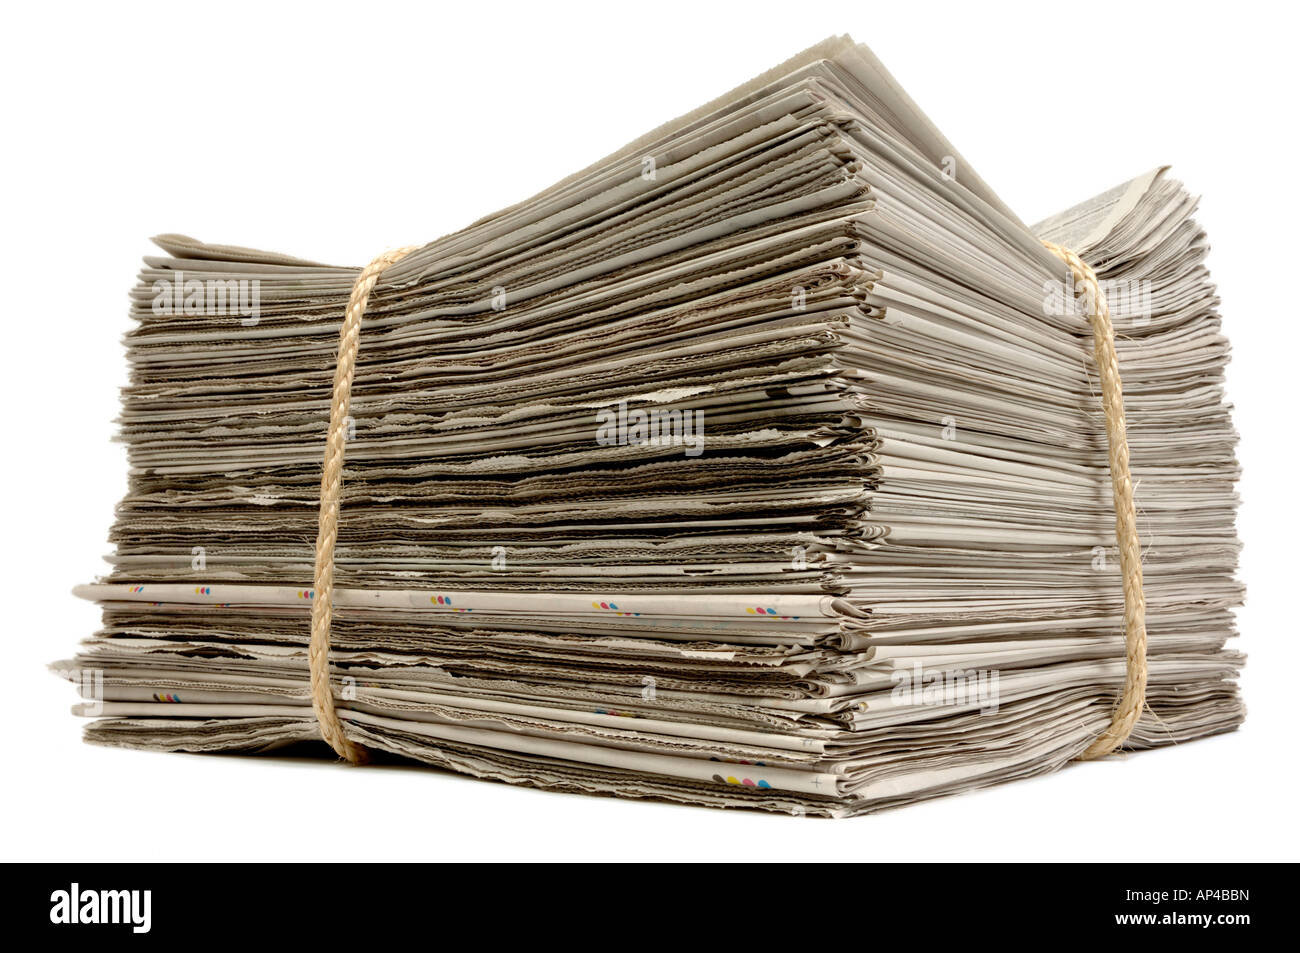 Stack of old newspapers - Stock Image